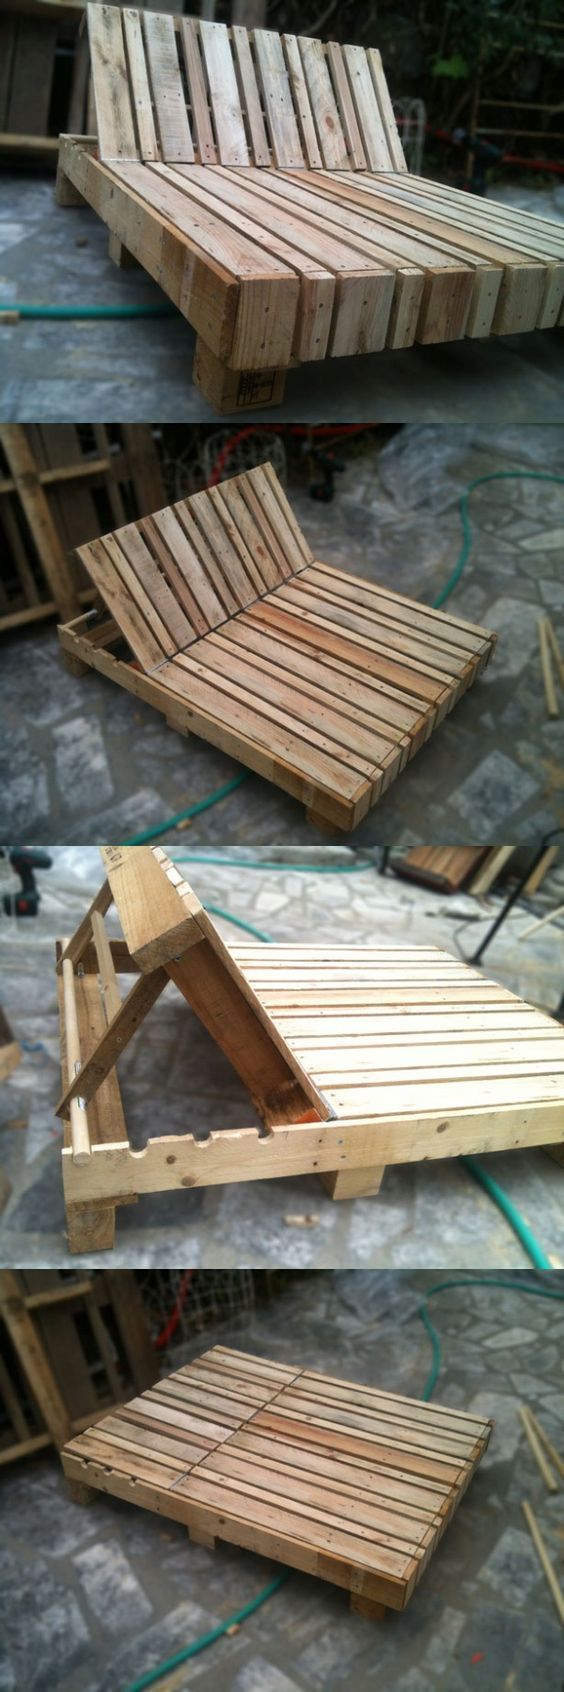 pallet deck chair project and make this the size of a full bed you